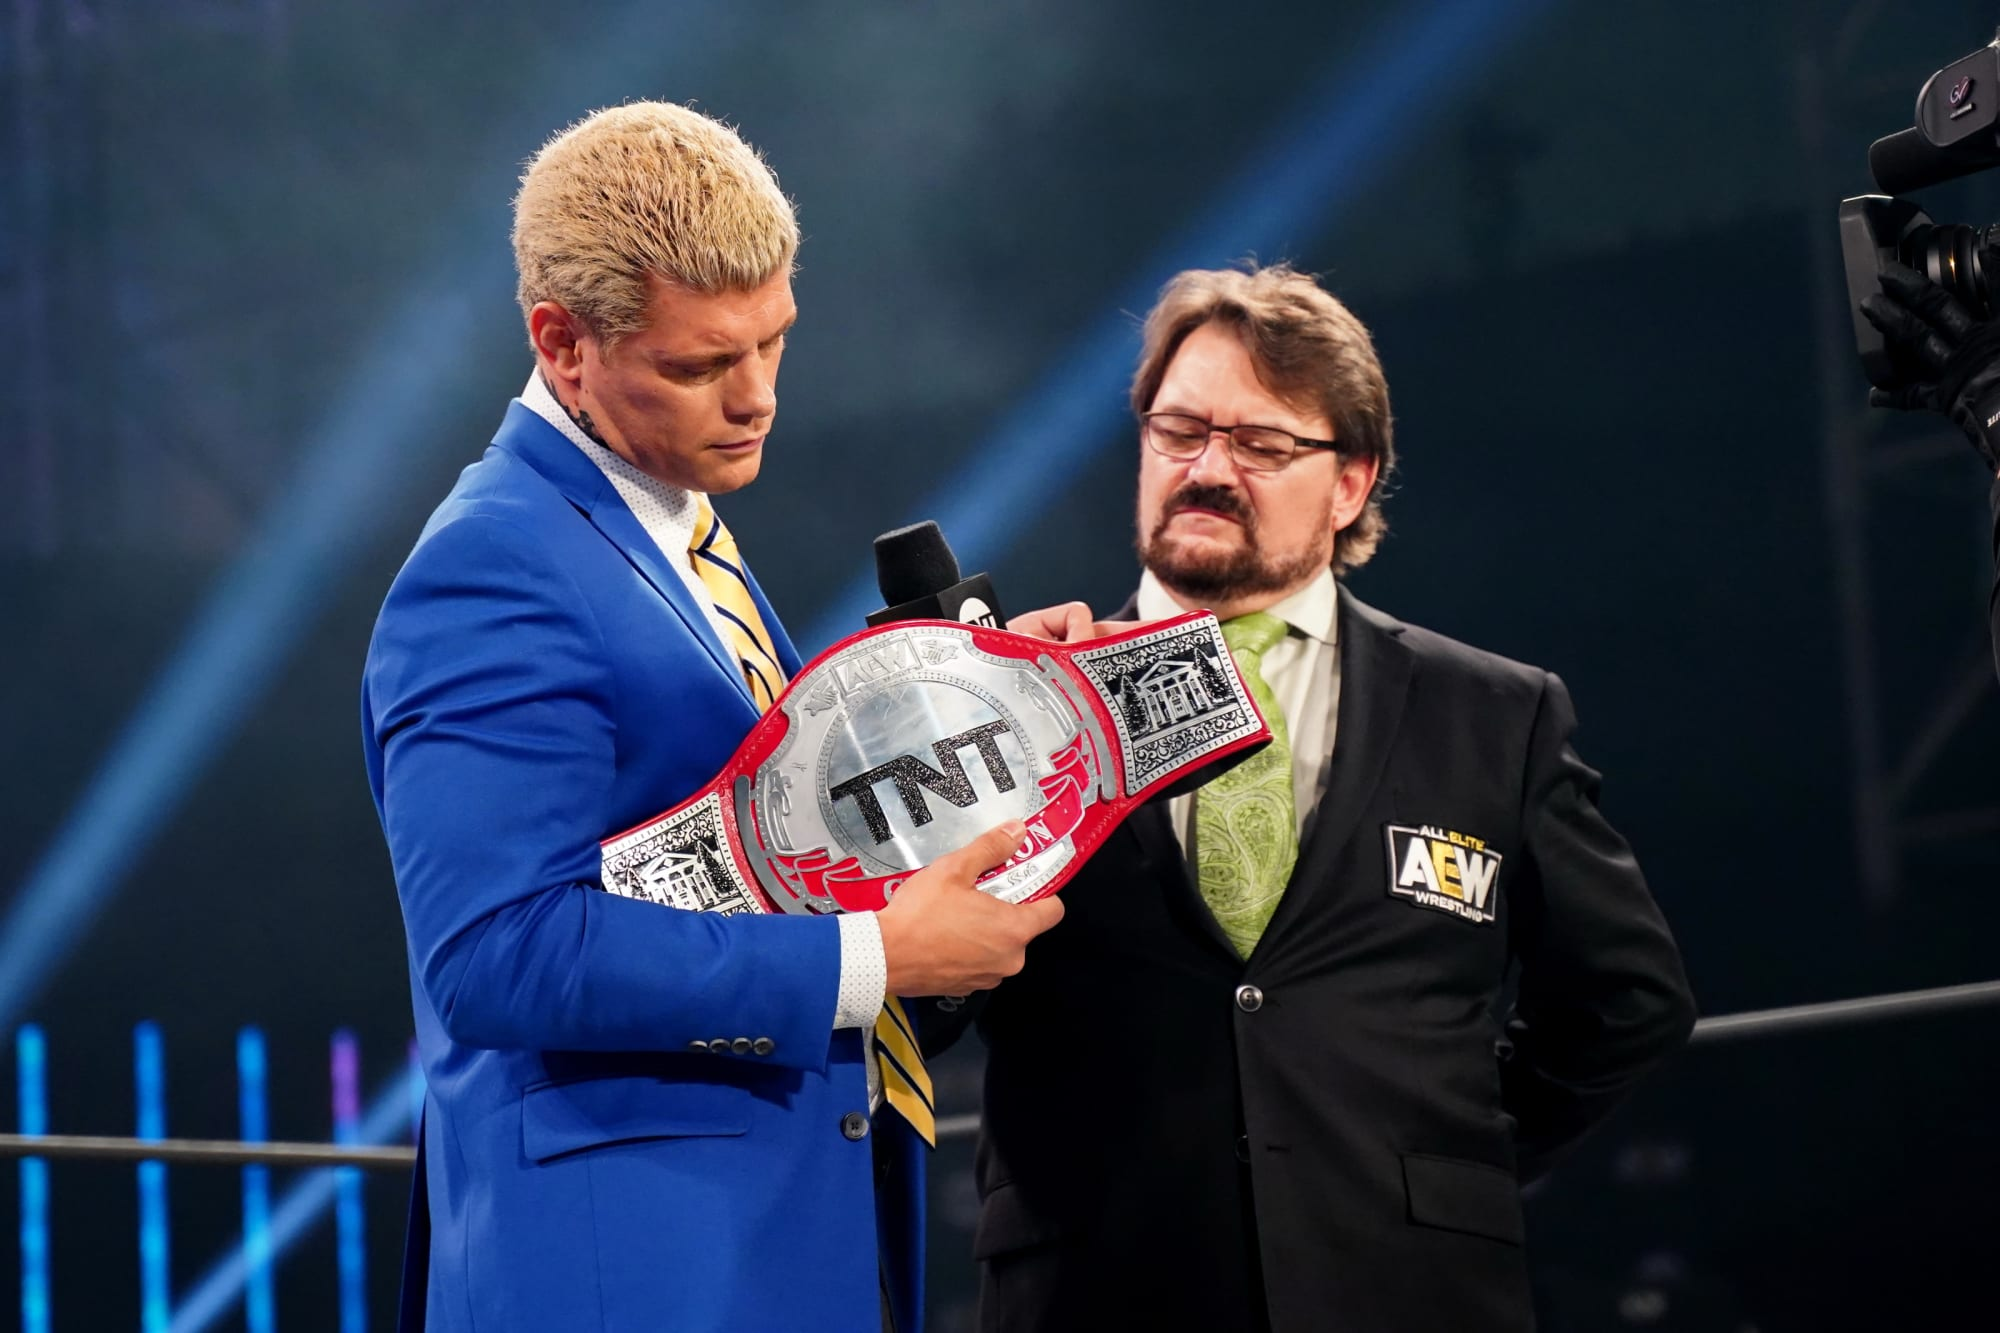 AEW: Cody Rhodes' TNT Title reign fails to uplift lesser-known talent